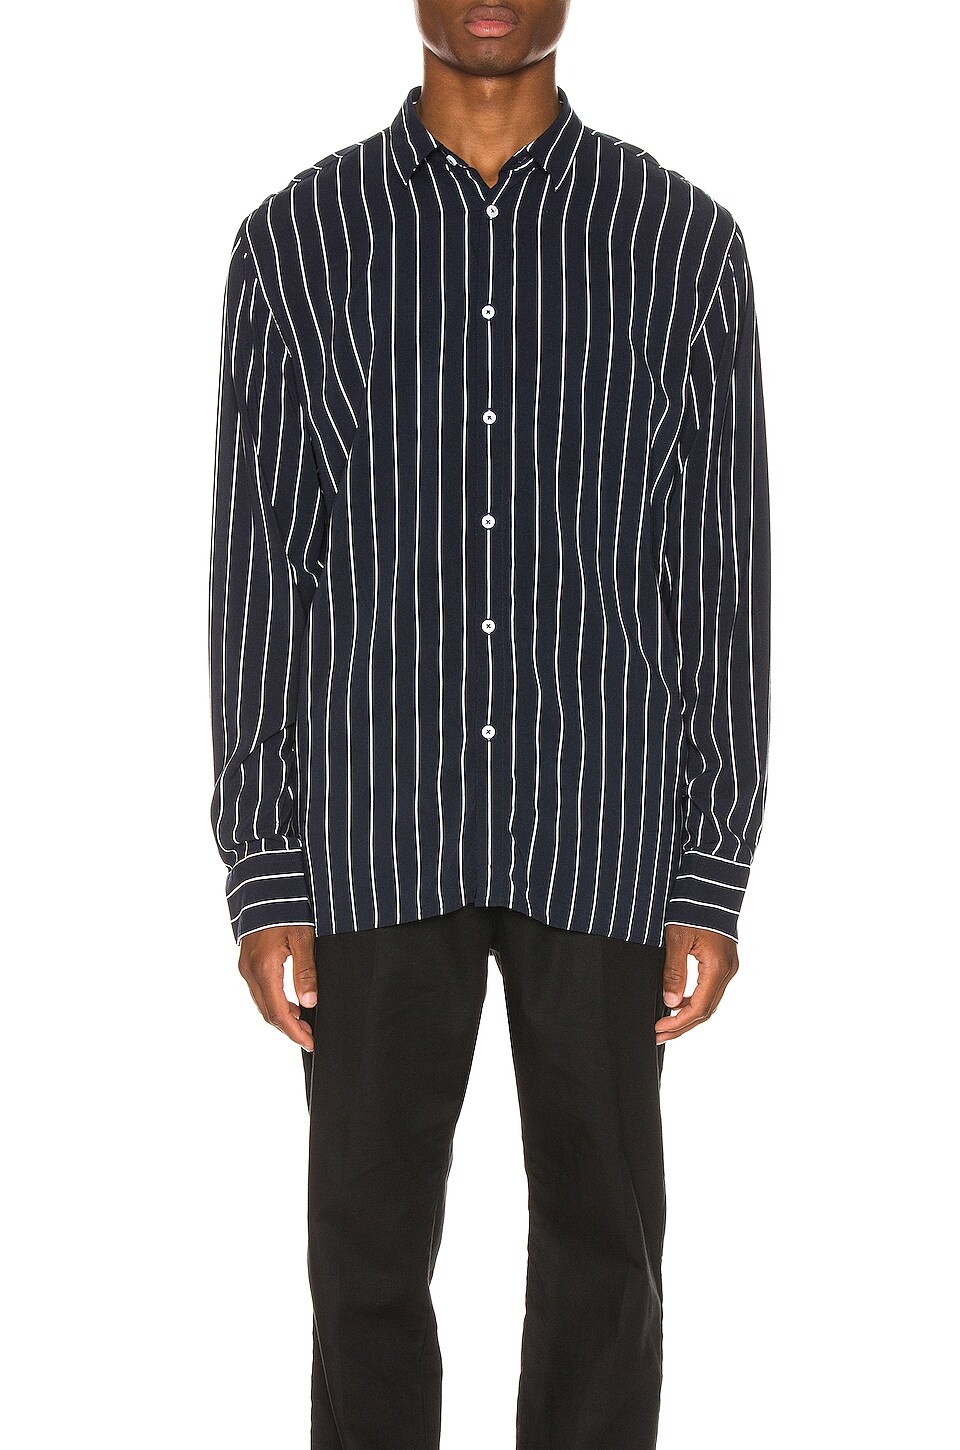 Zanerobe Pinstripe Long Sleeve Shirt in Ink & Milk